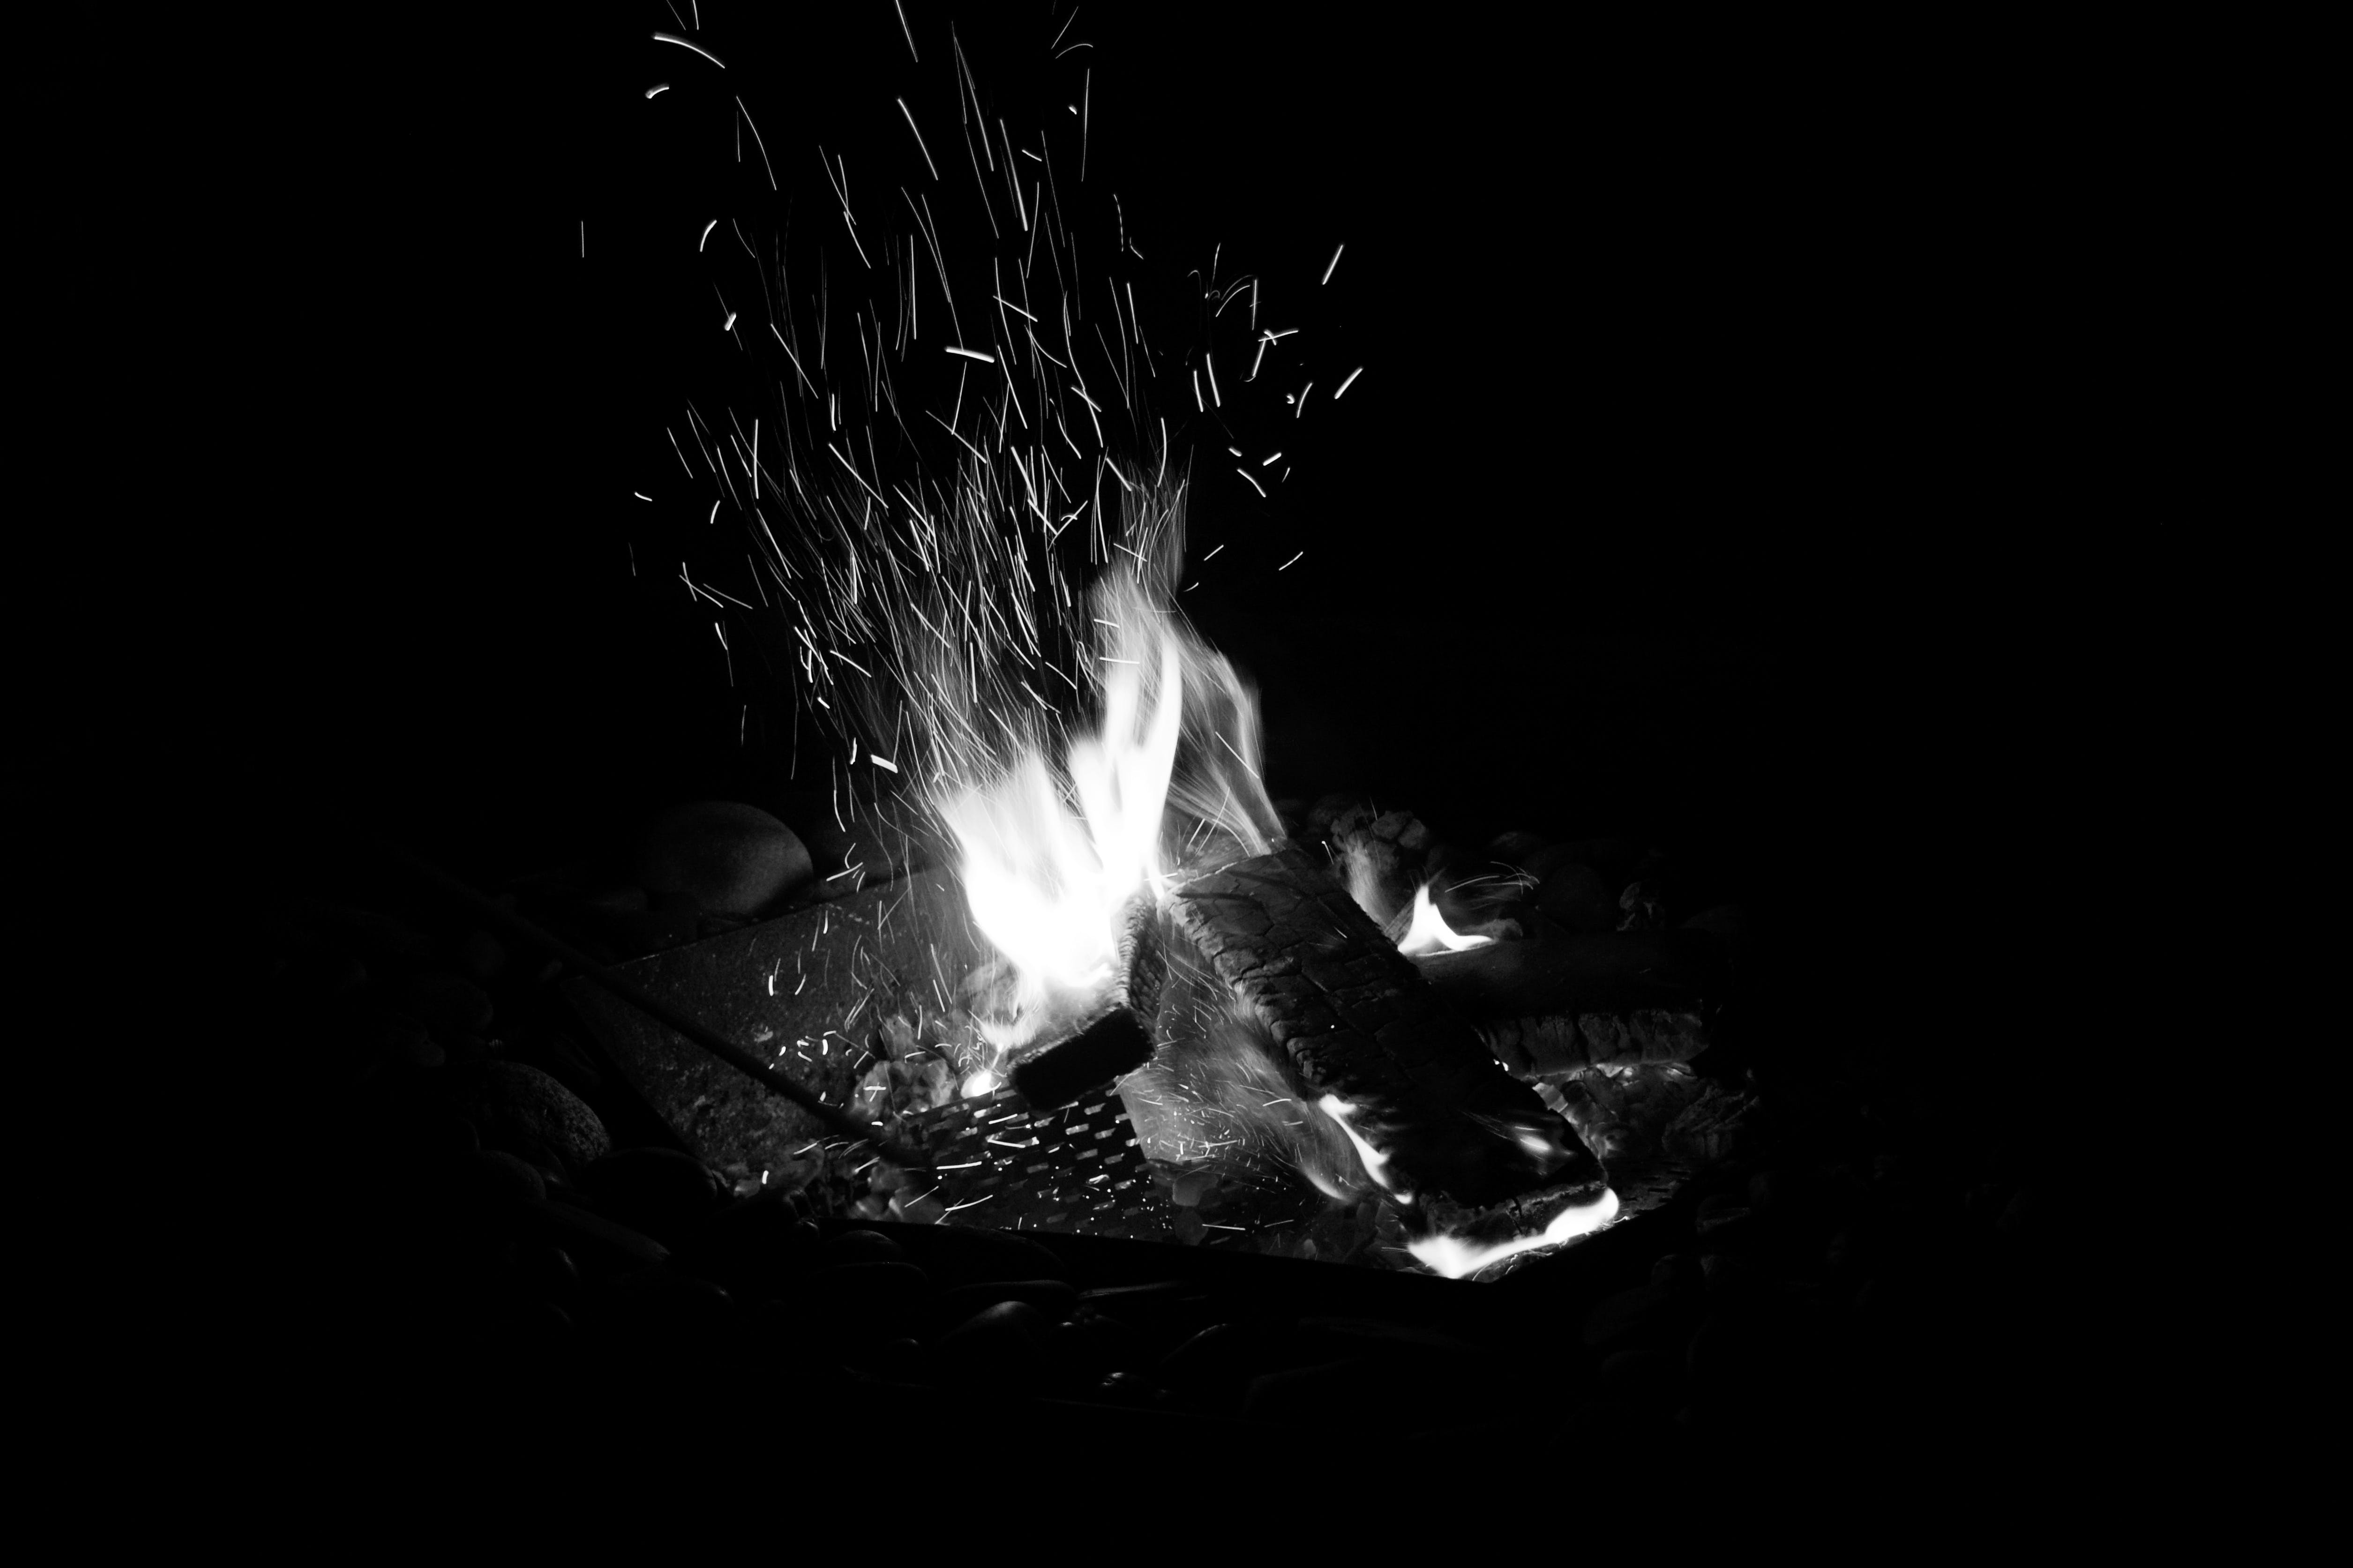 Camping Fire during Nighttime